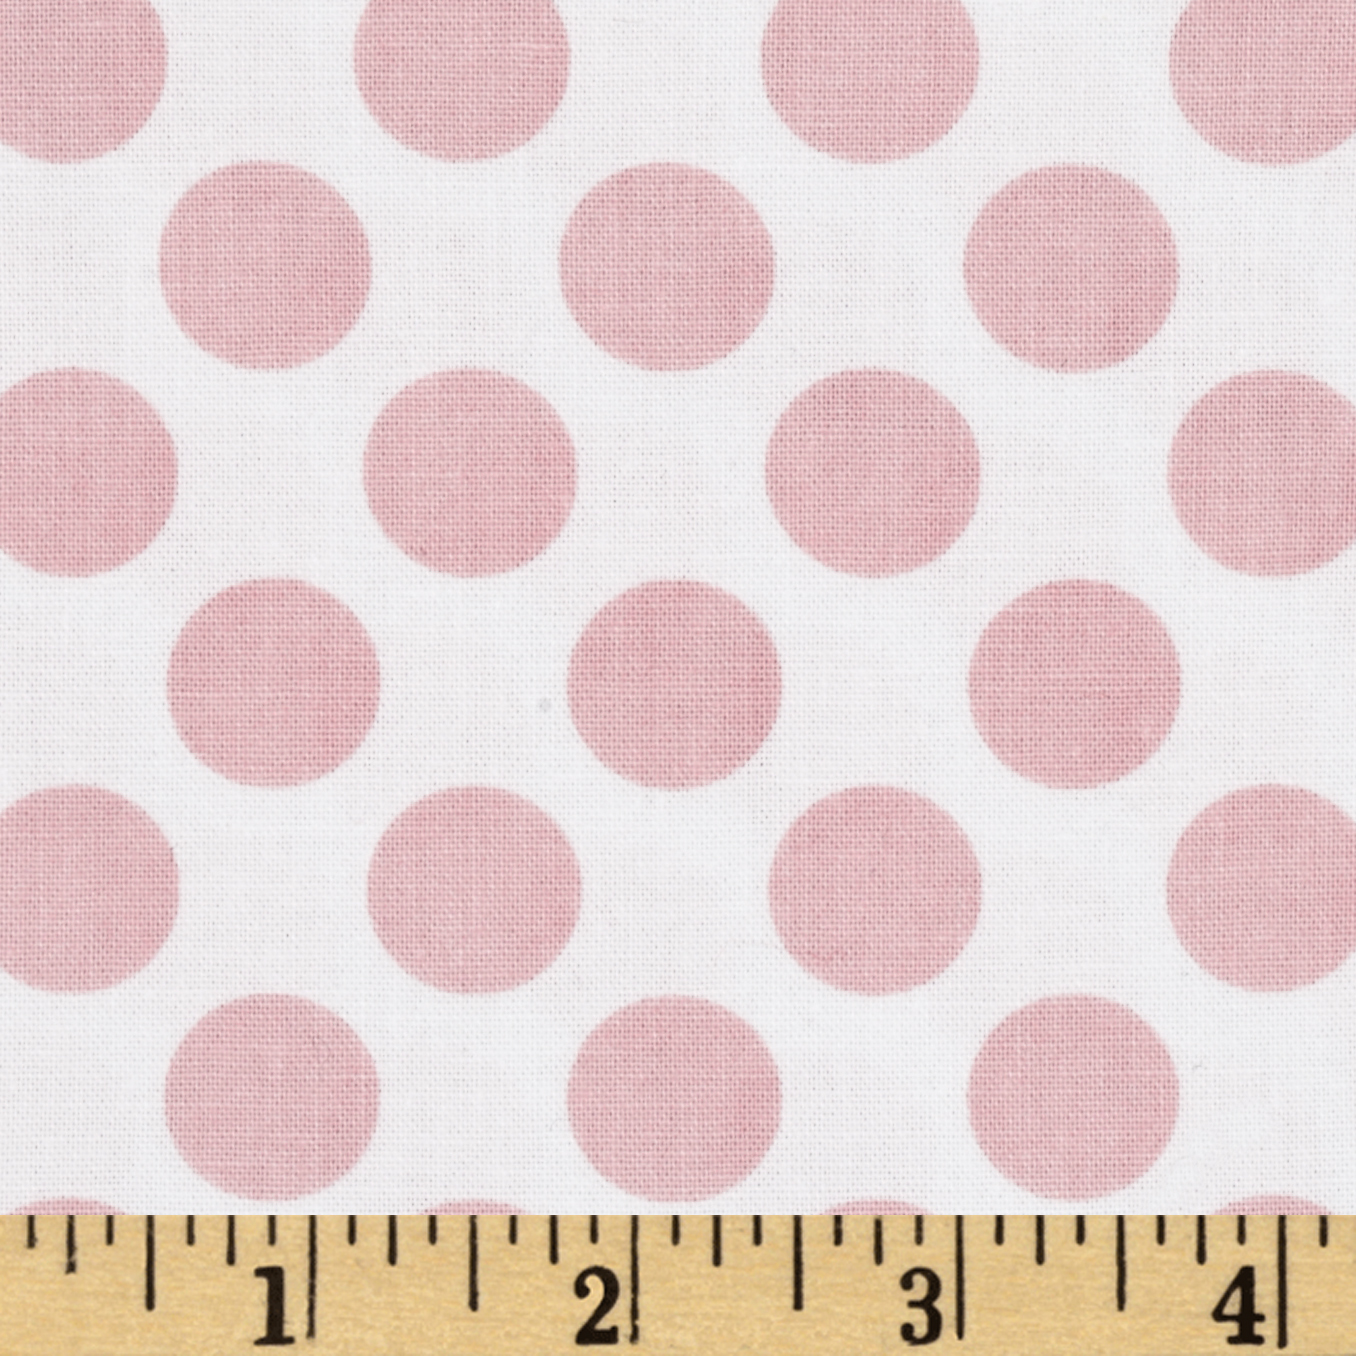 Jams & Jellies Dot Pink Fabric